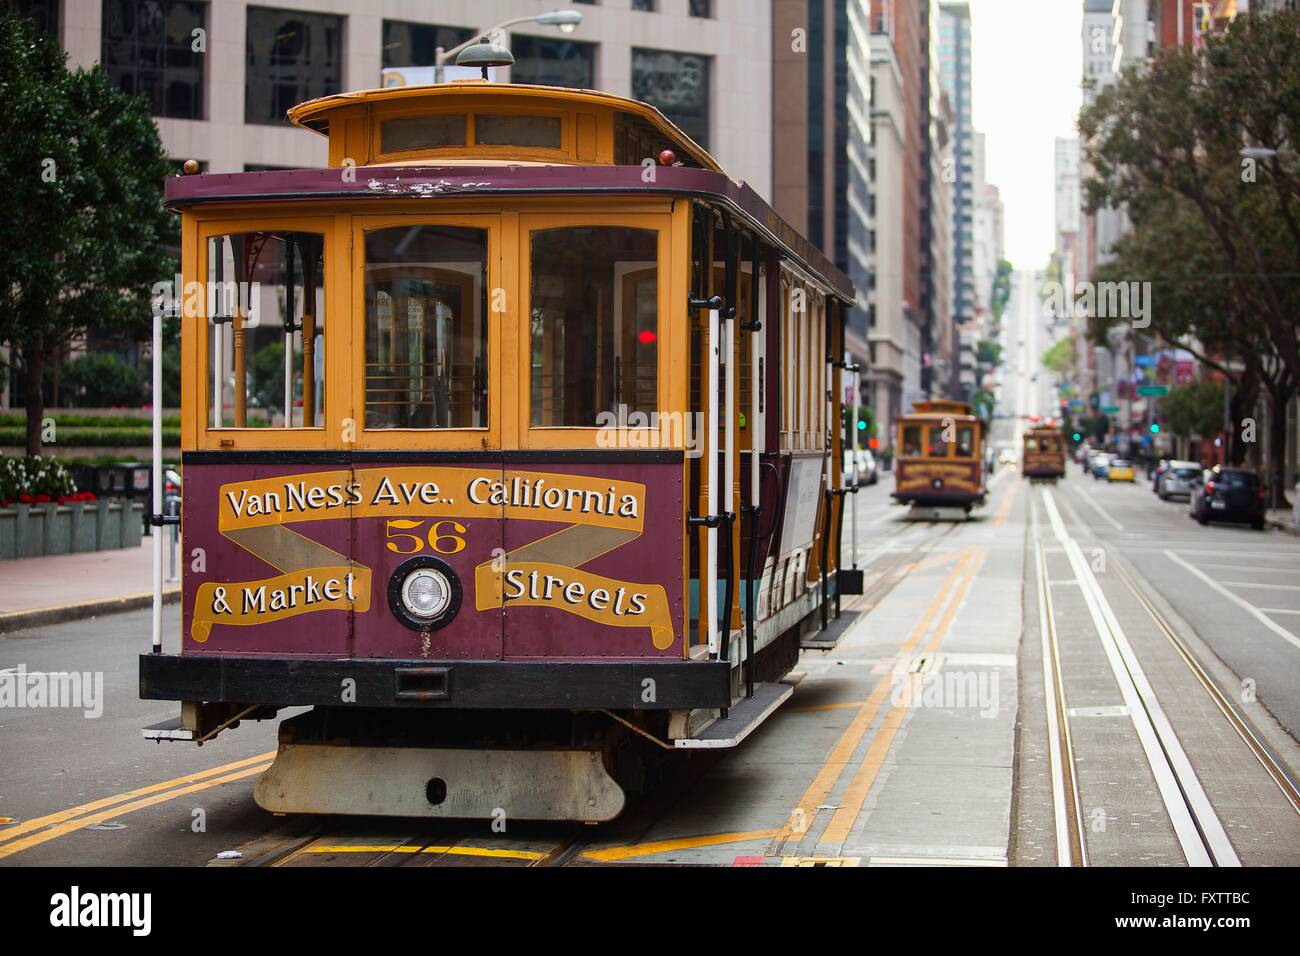 Traditional trams and tramlines, San Francisco, California, USA Stock Photo